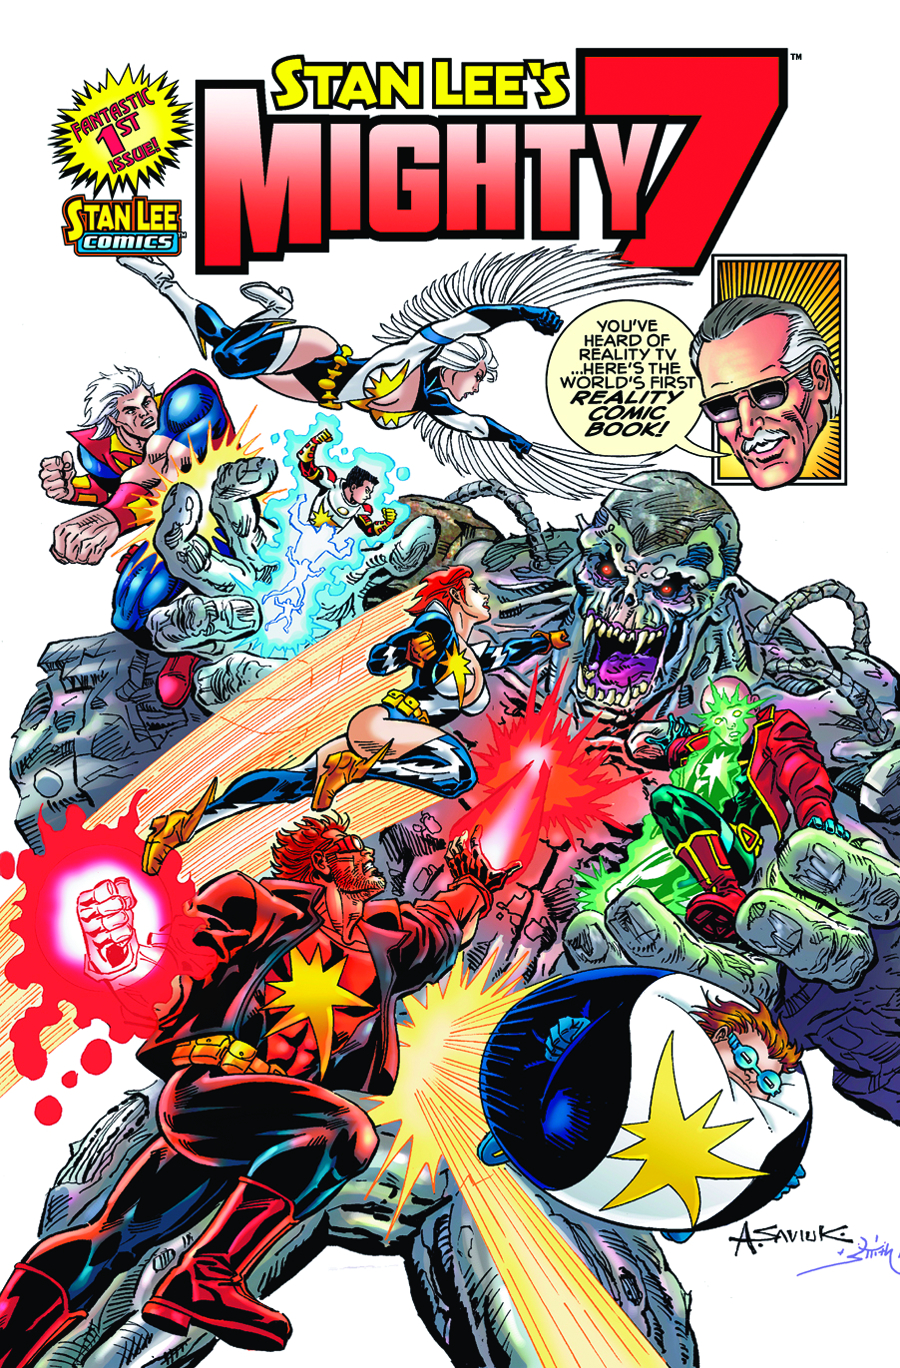 STAN LEES MIGHTY 7 #1